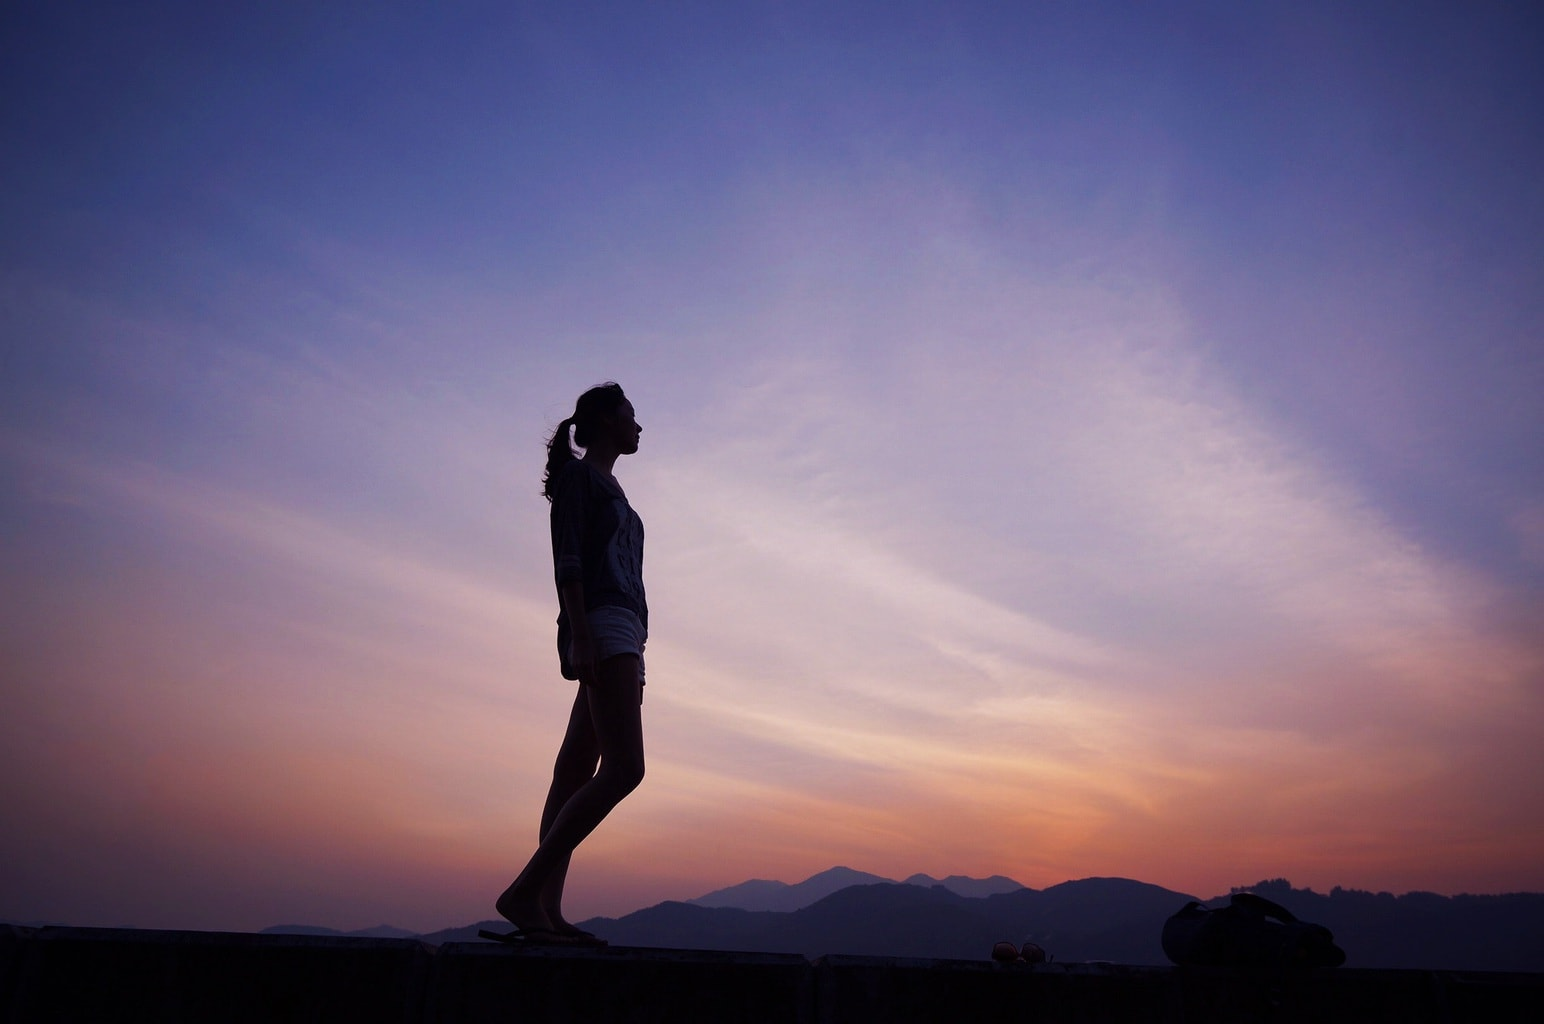 Introverted girl standing alone on a mountain in front of a sunset